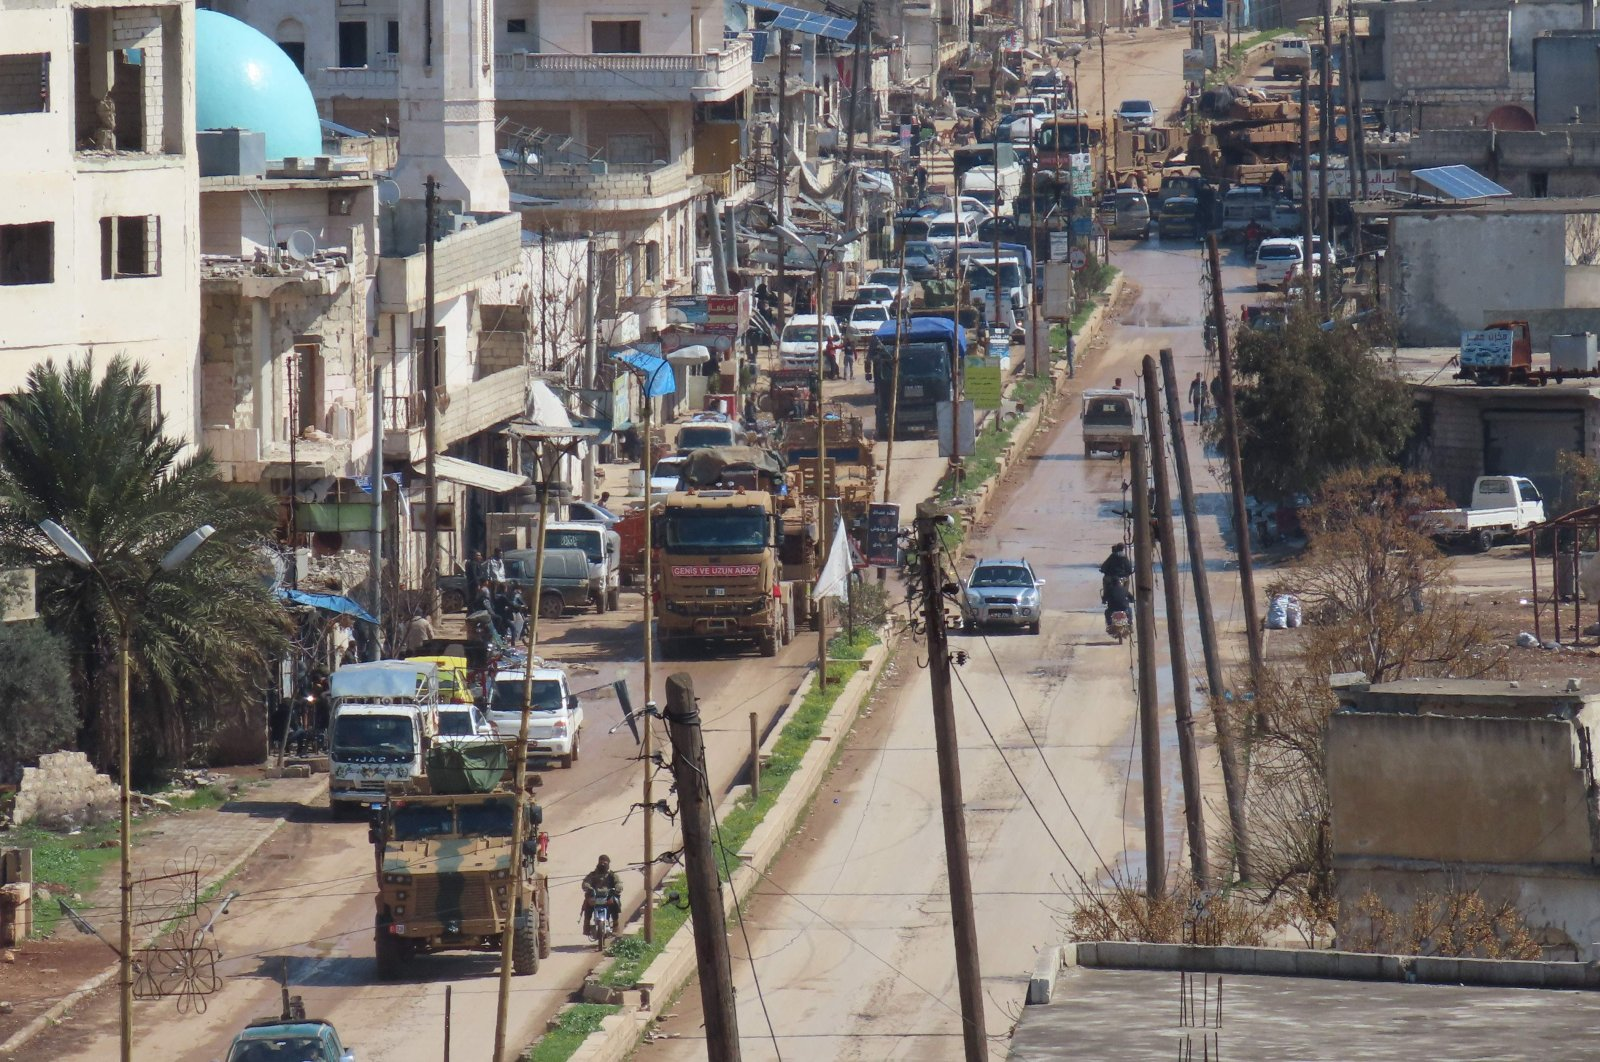 A Turkish military convoy drives through the town of Binnish, in Syria's northwestern Idlib province near the Turkish border, Thursday, March 19, 2020. (AFP)